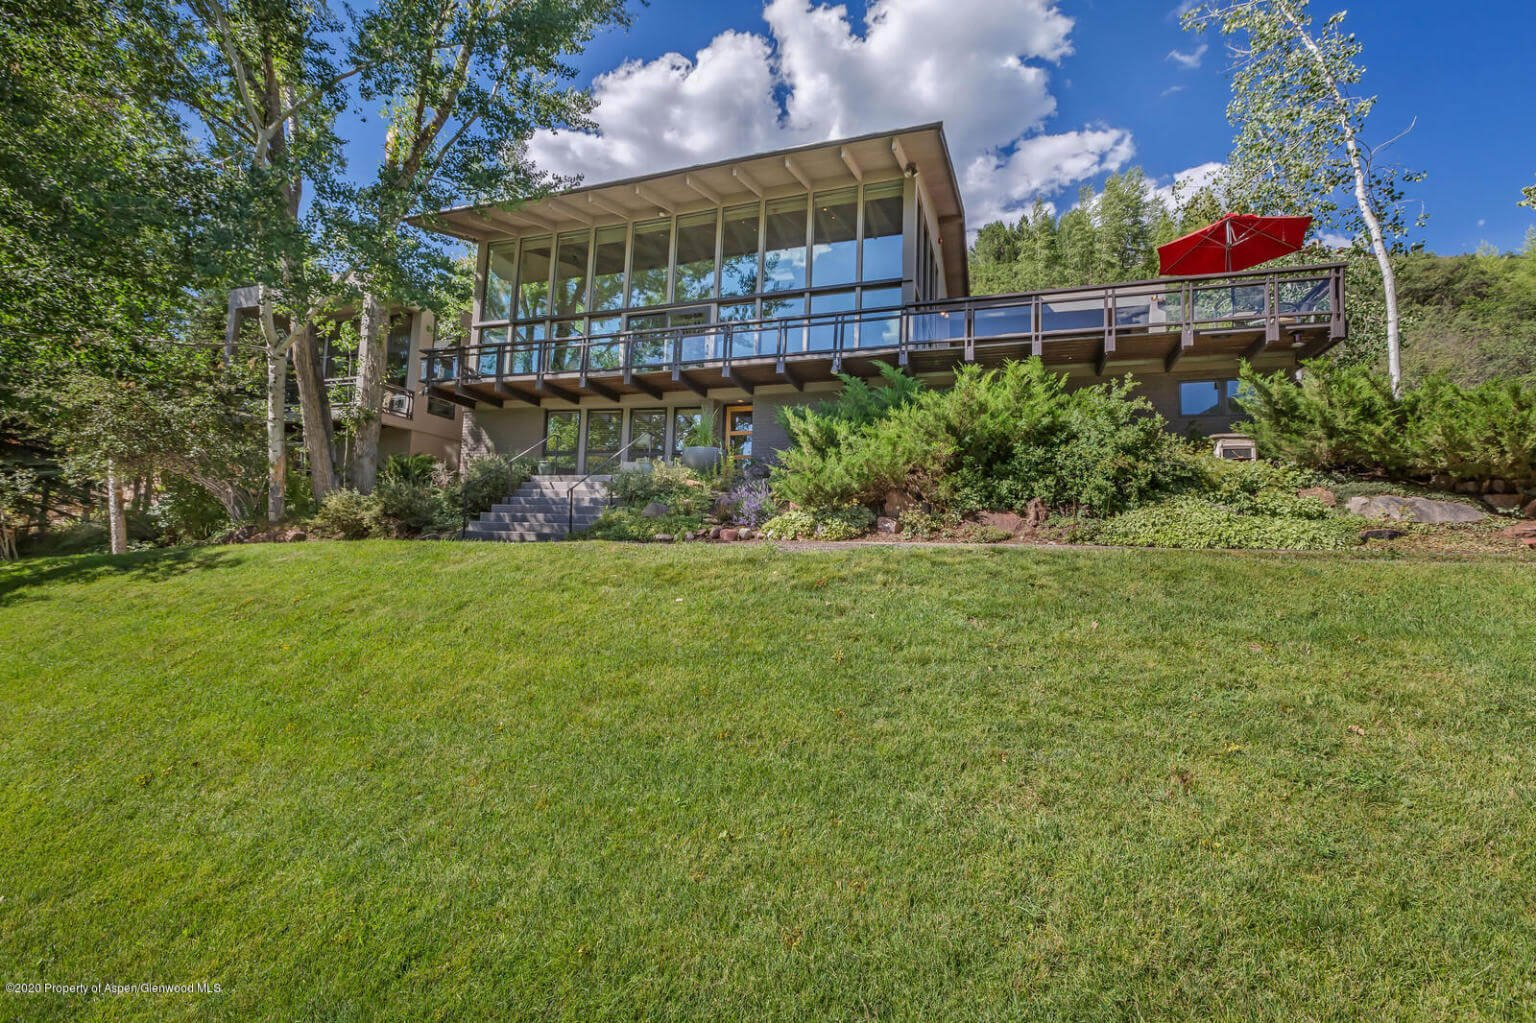 1967 Built/1996 Remodeled Red Mountain Home at 239 Willoughby Way Closes at $12M/$2,378 SF Furn Image